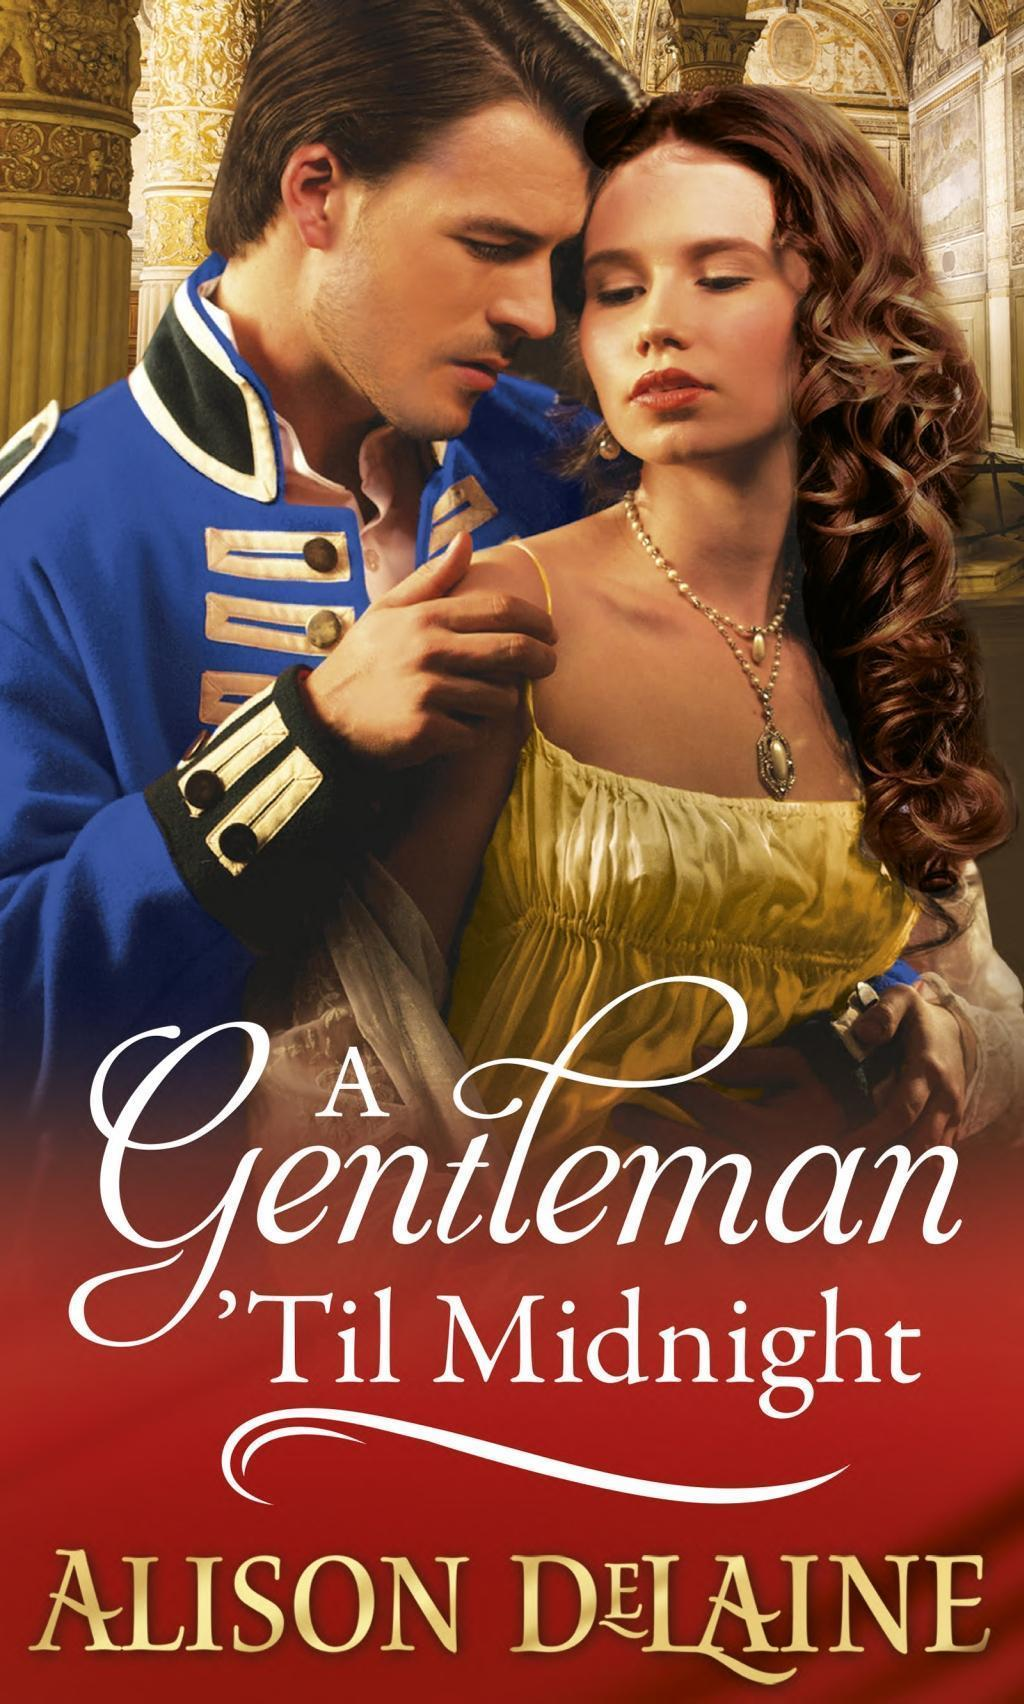 A Gentleman 'Til Midnight (Mills & Boon M&B)